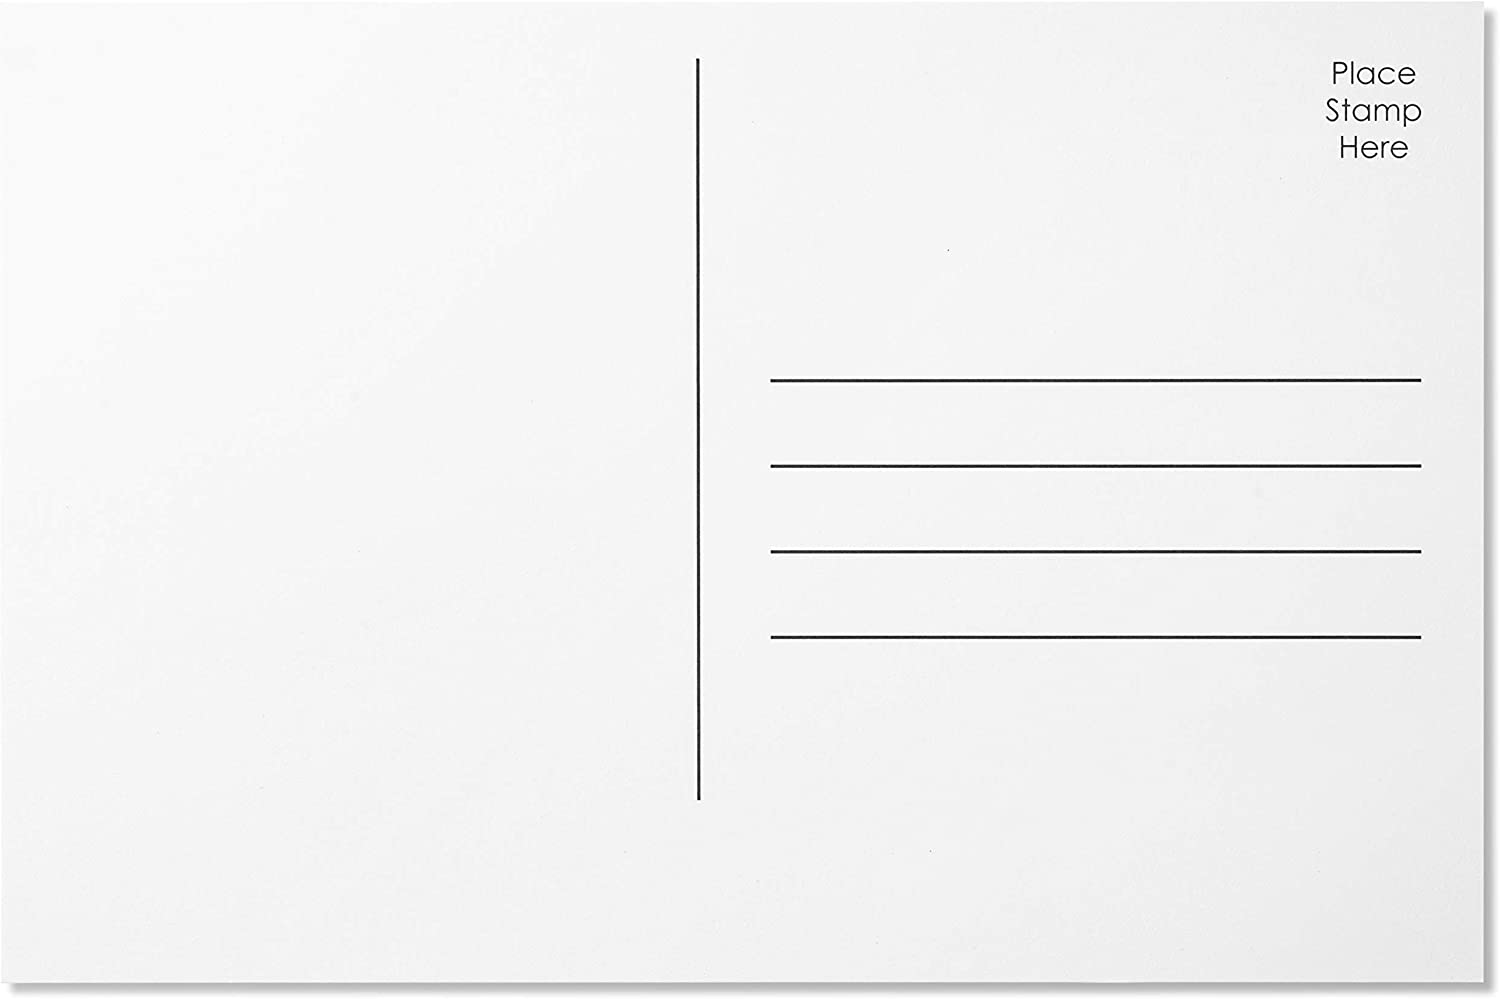 Jot Mark Design Your Own Blank Postcards 4x6 Mailable Ranking TOP9 outlet Plain